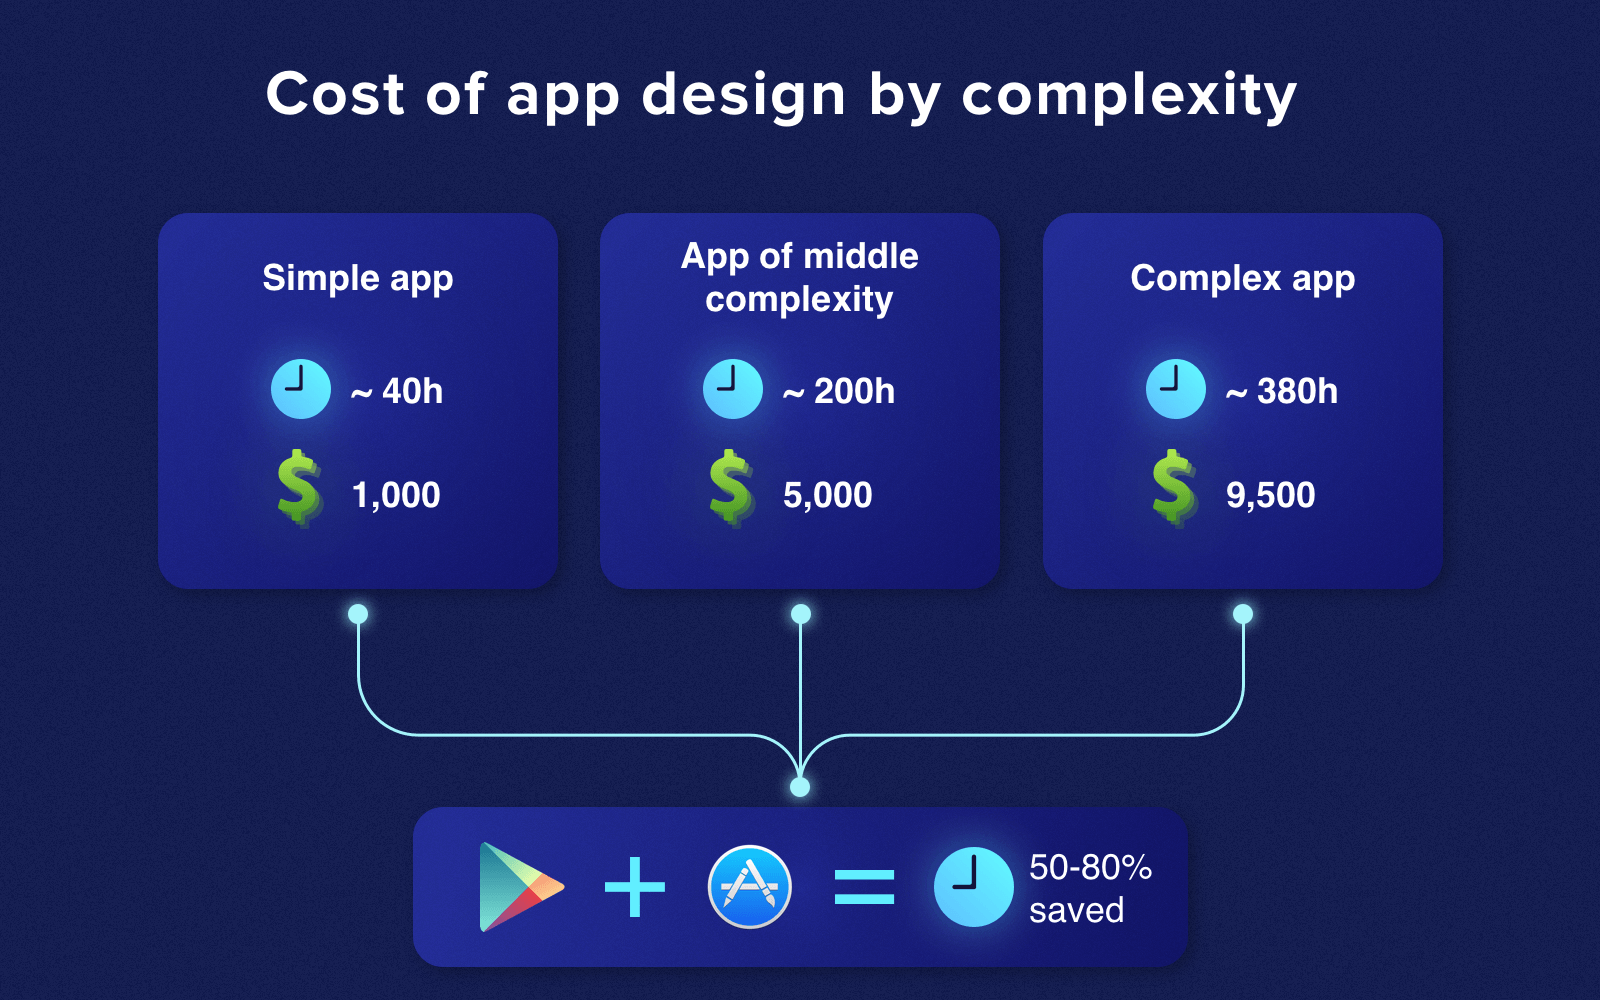 Mobile app design cost by complexity